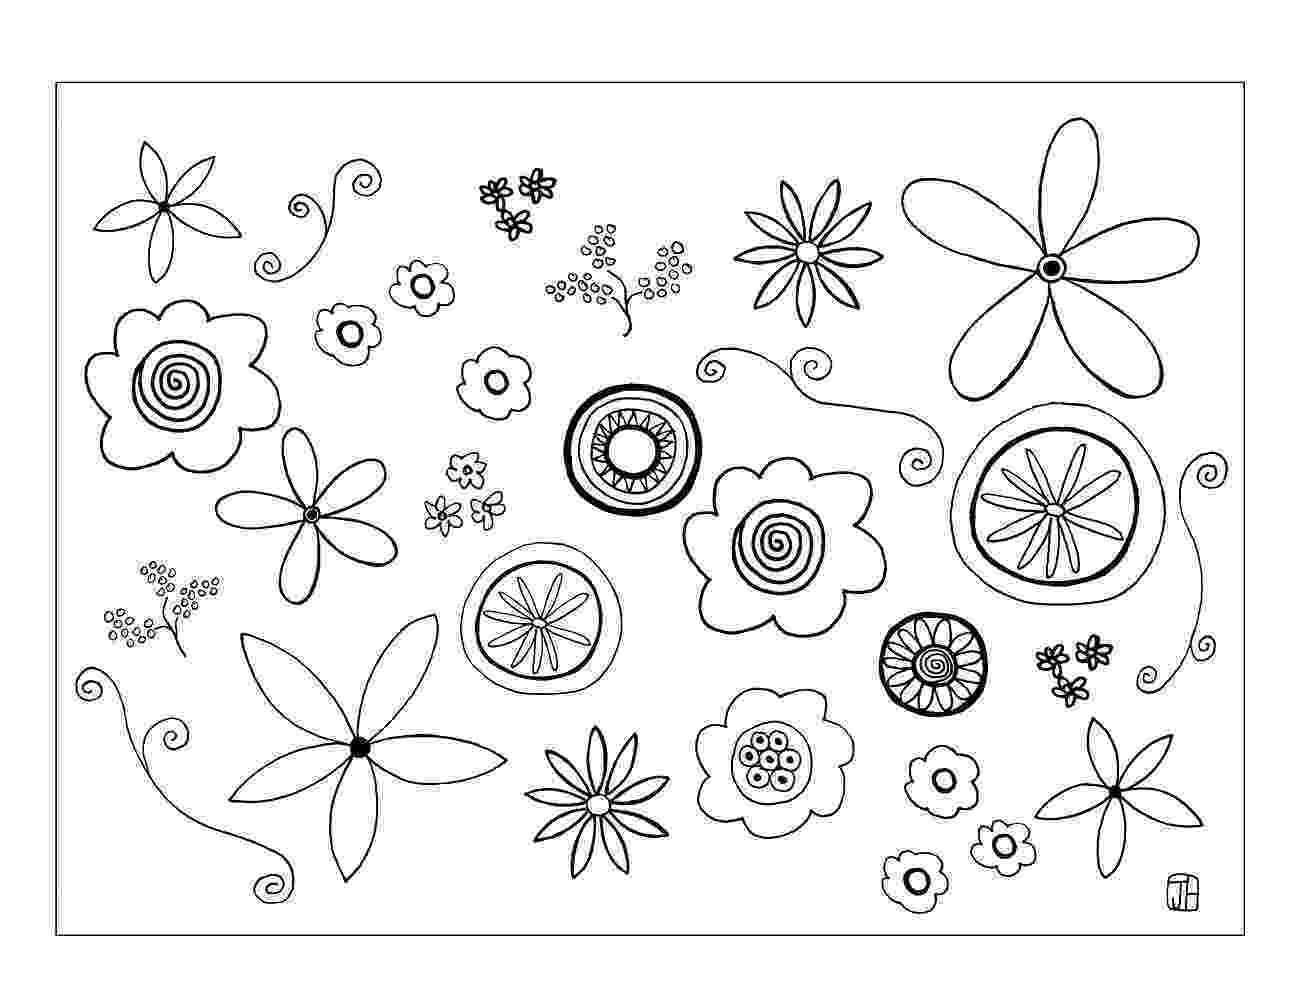 flower templates for coloring free printable flower coloring pages for kids best templates coloring for flower